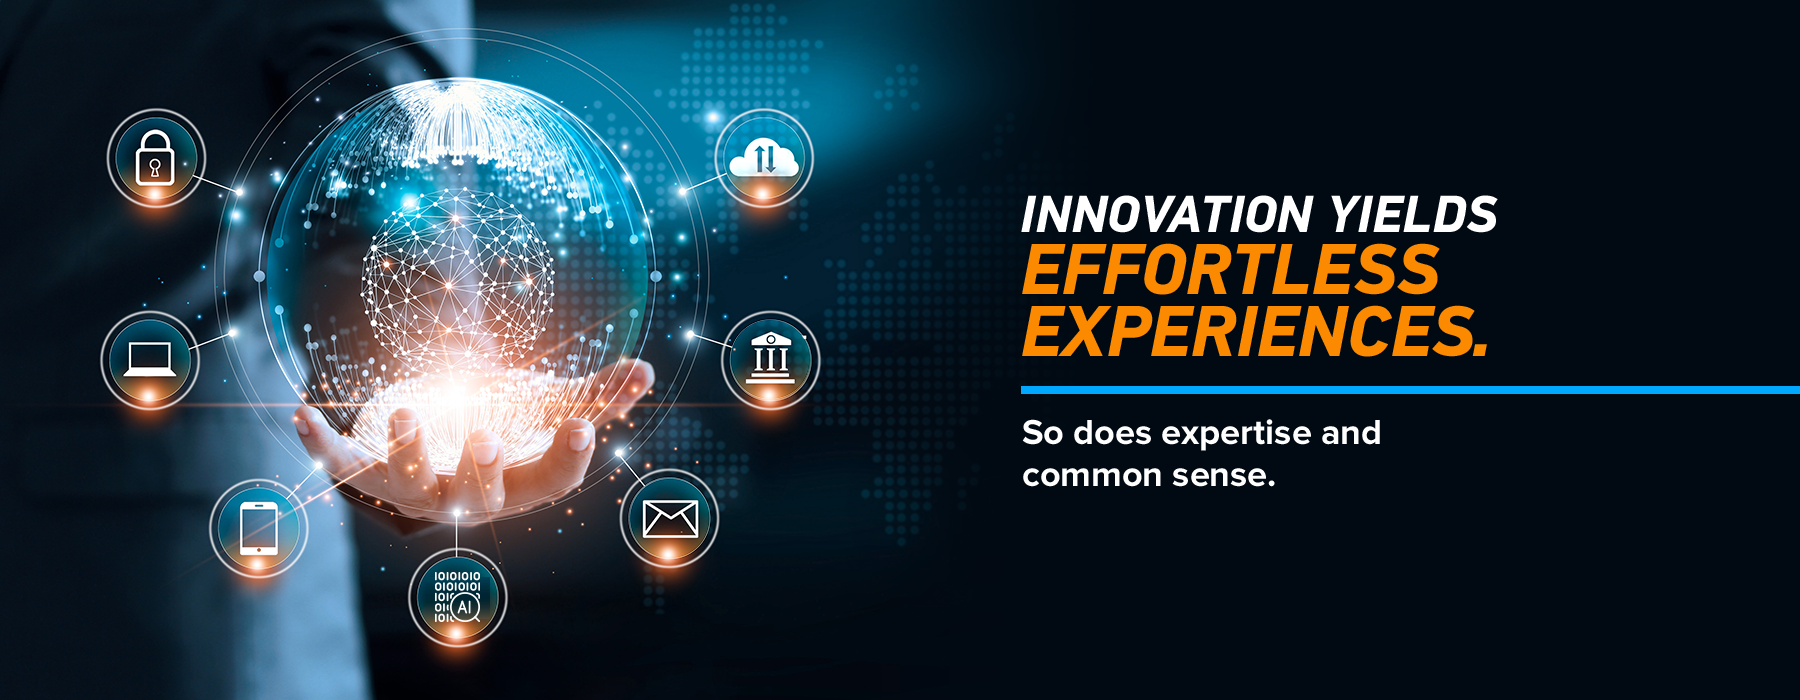 innovation yields effortless experiences